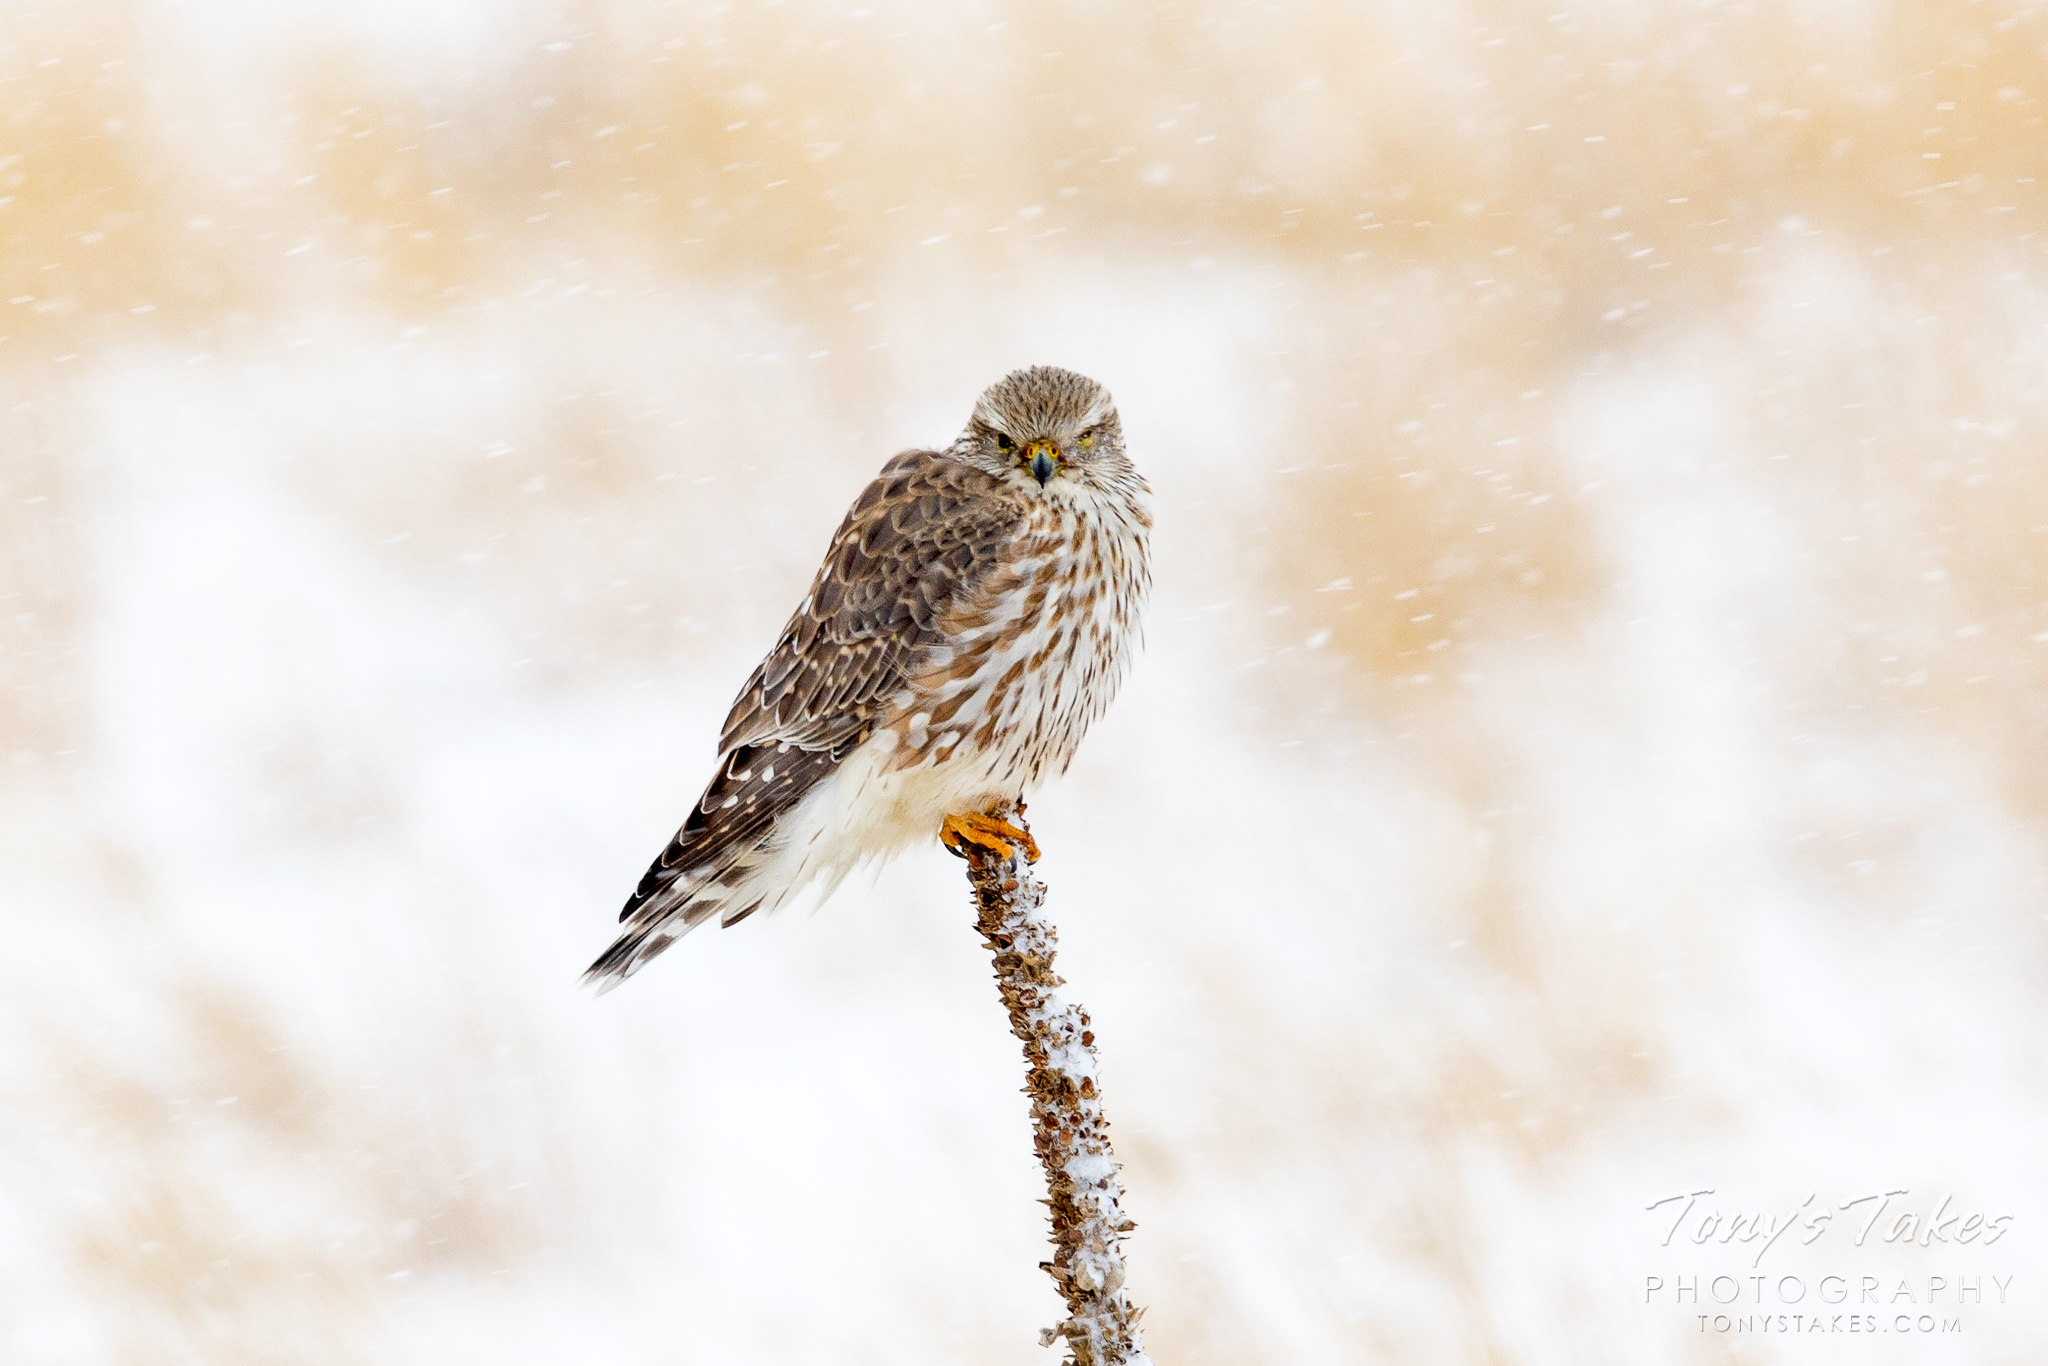 Merlin holds on tight as a snowstorm rages